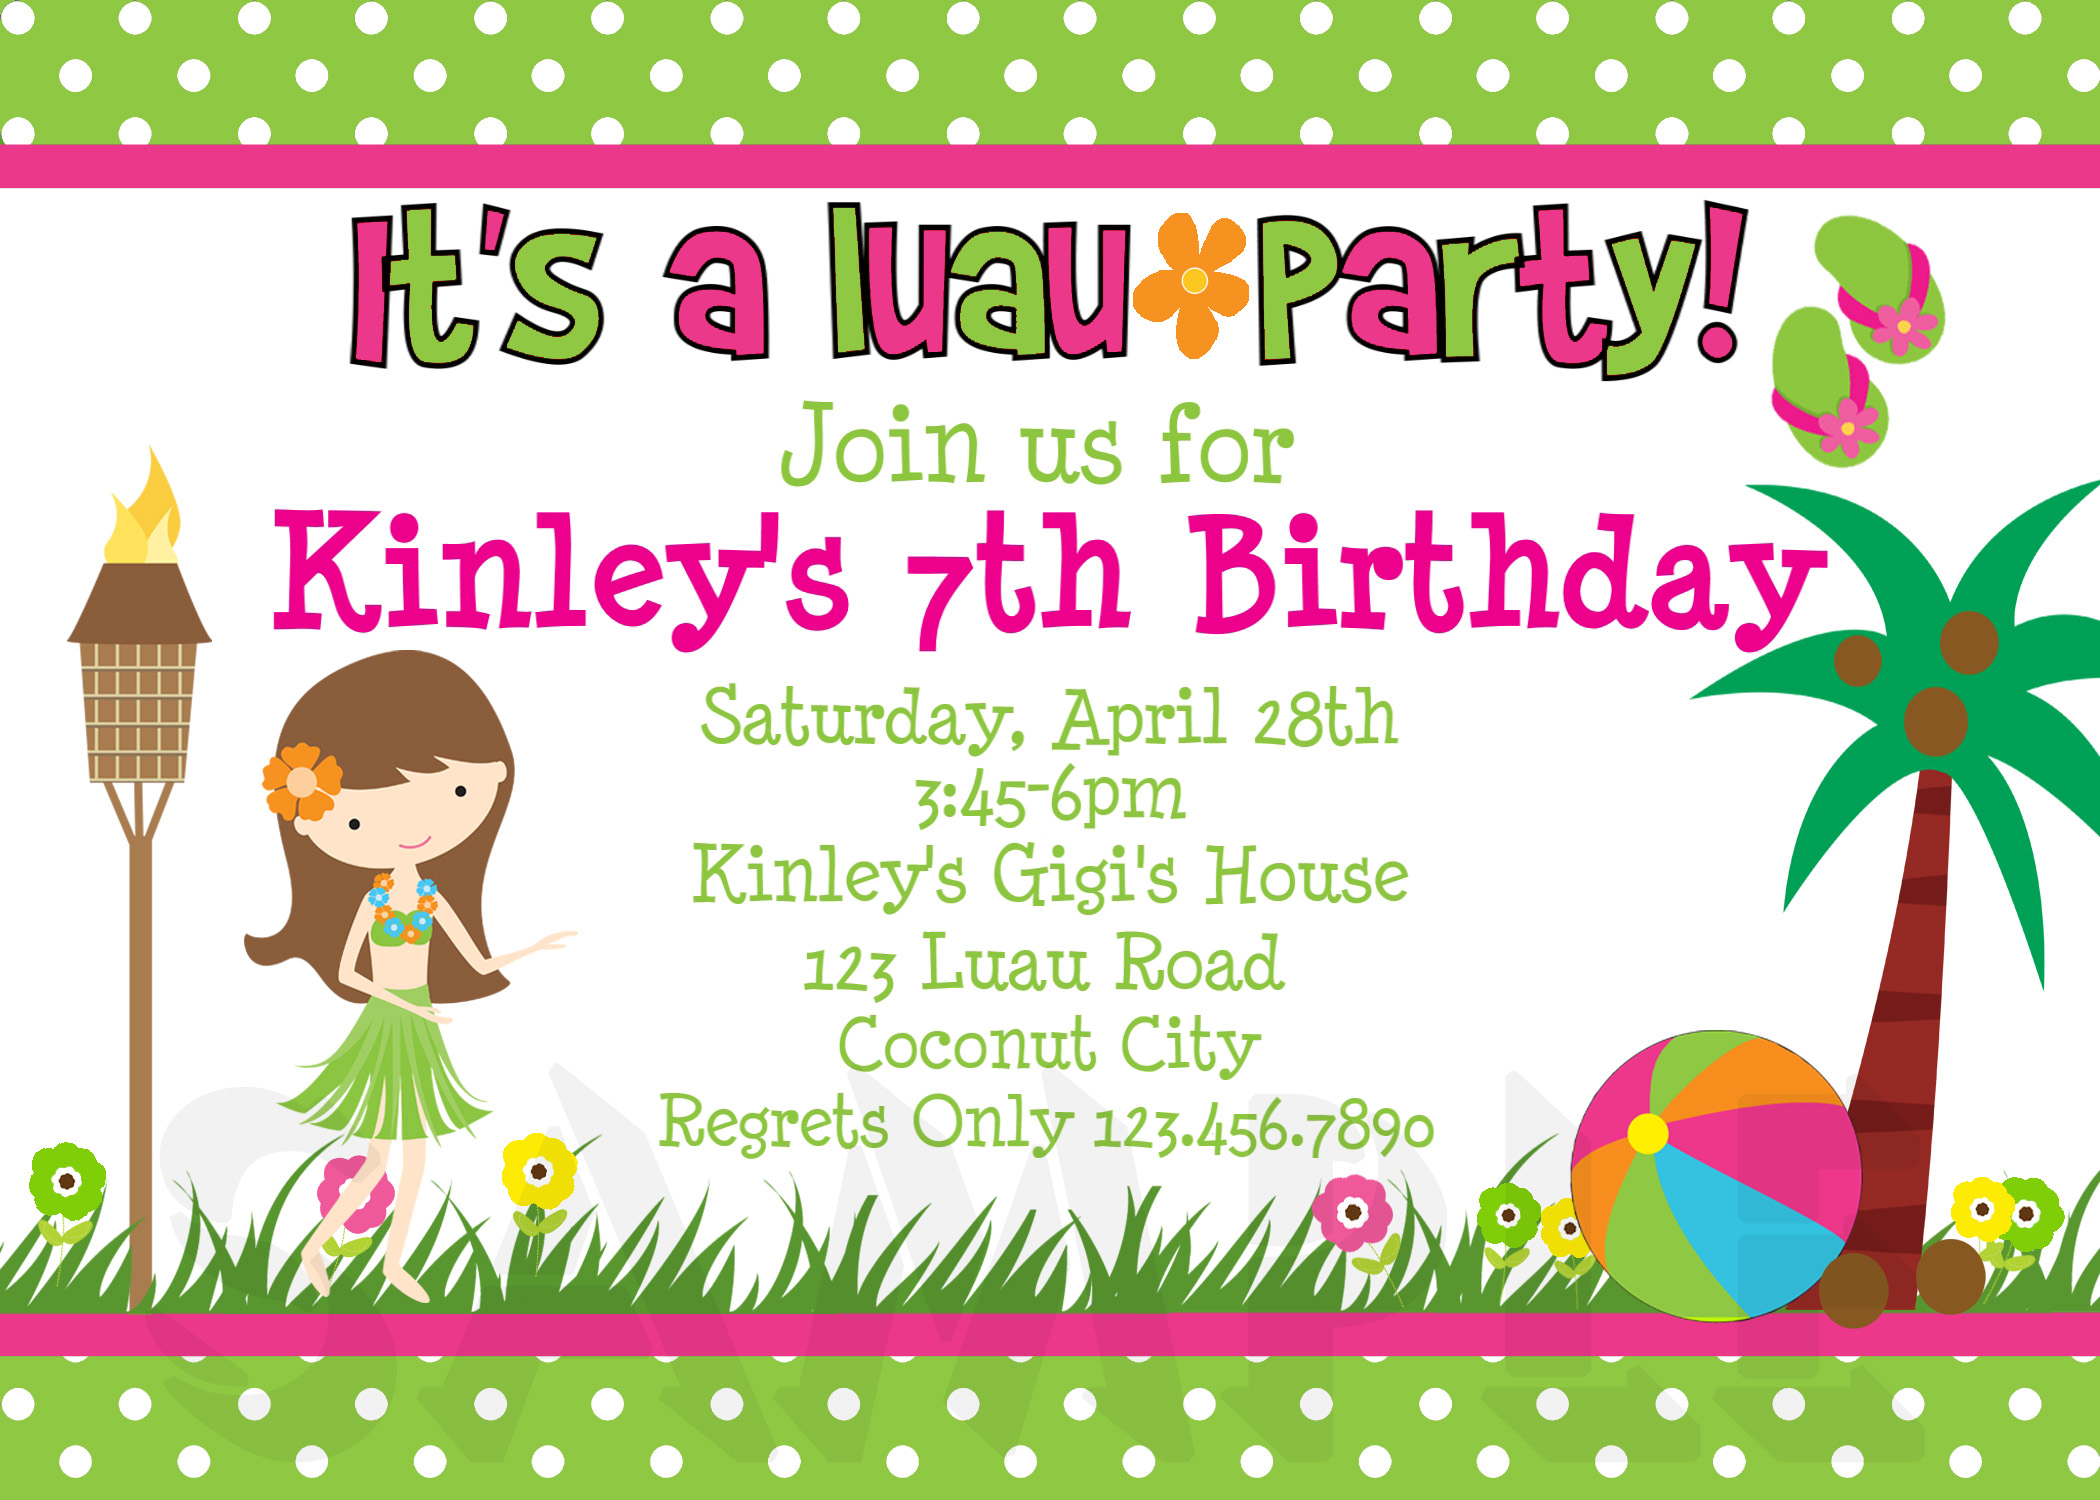 Printable Birthday Invitations 4 Coloring Kids – Free Kids Party Invitations to Print